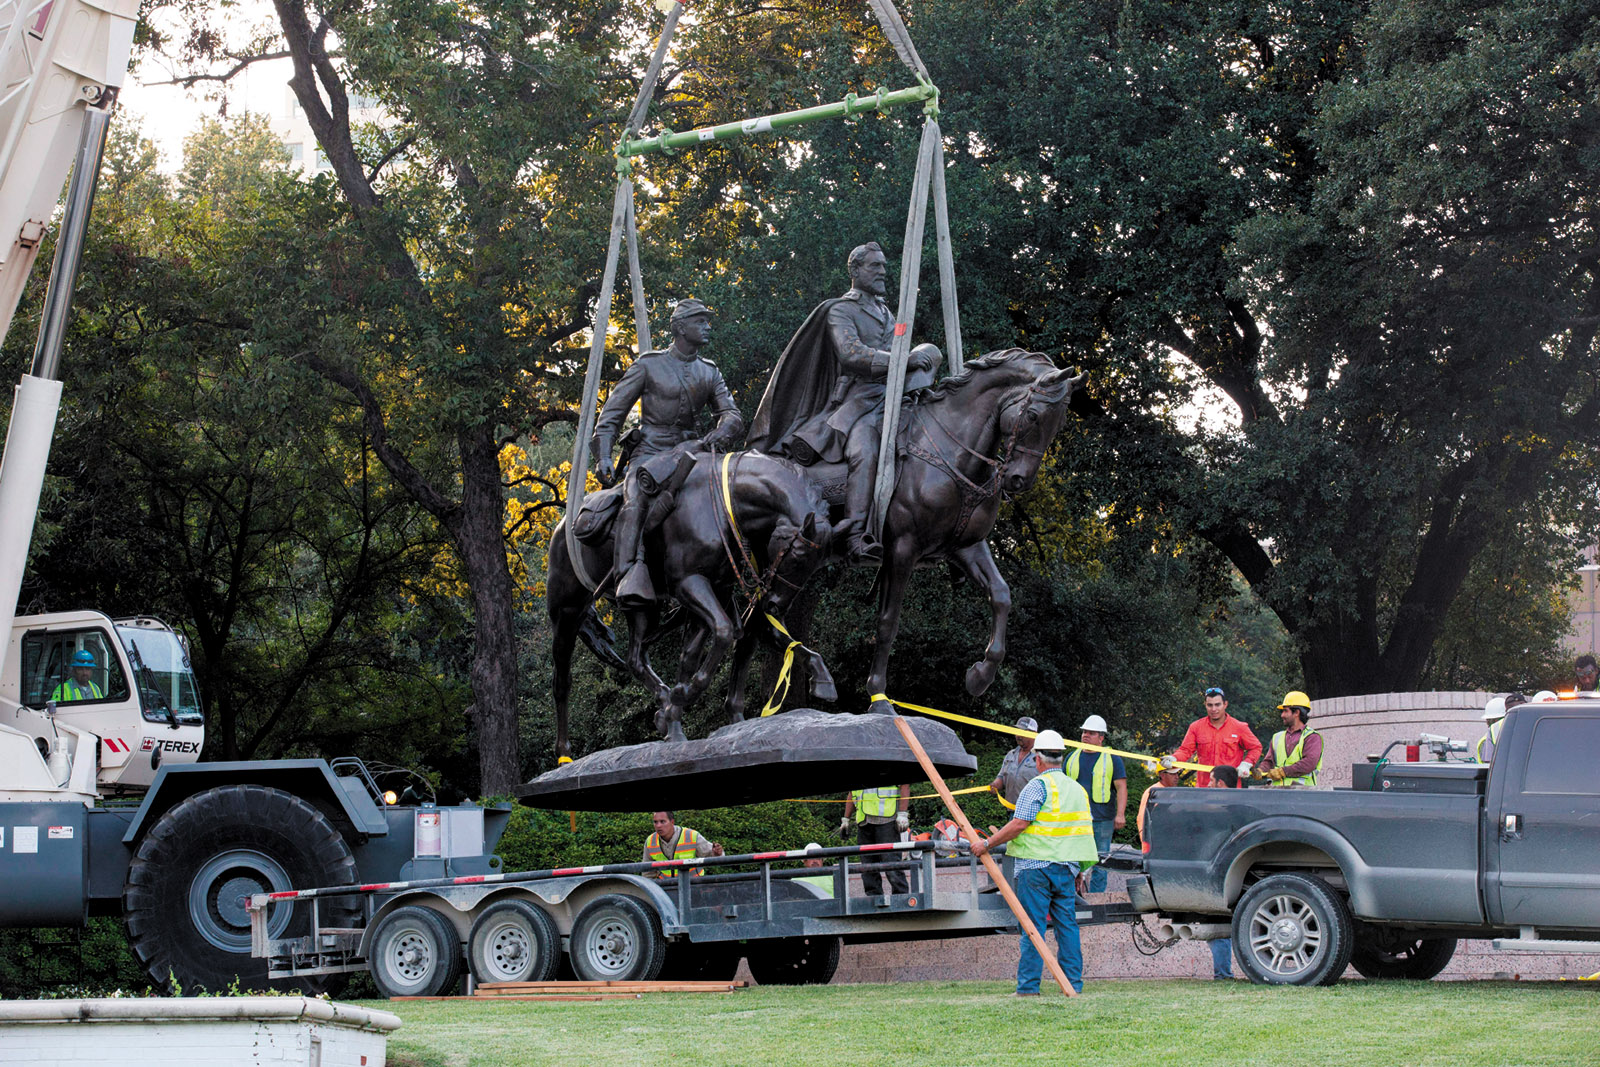 Workers removing a statute of Confederate general Robert E. Lee from Robert E. Lee Park, Dallas, Texas, September 2017